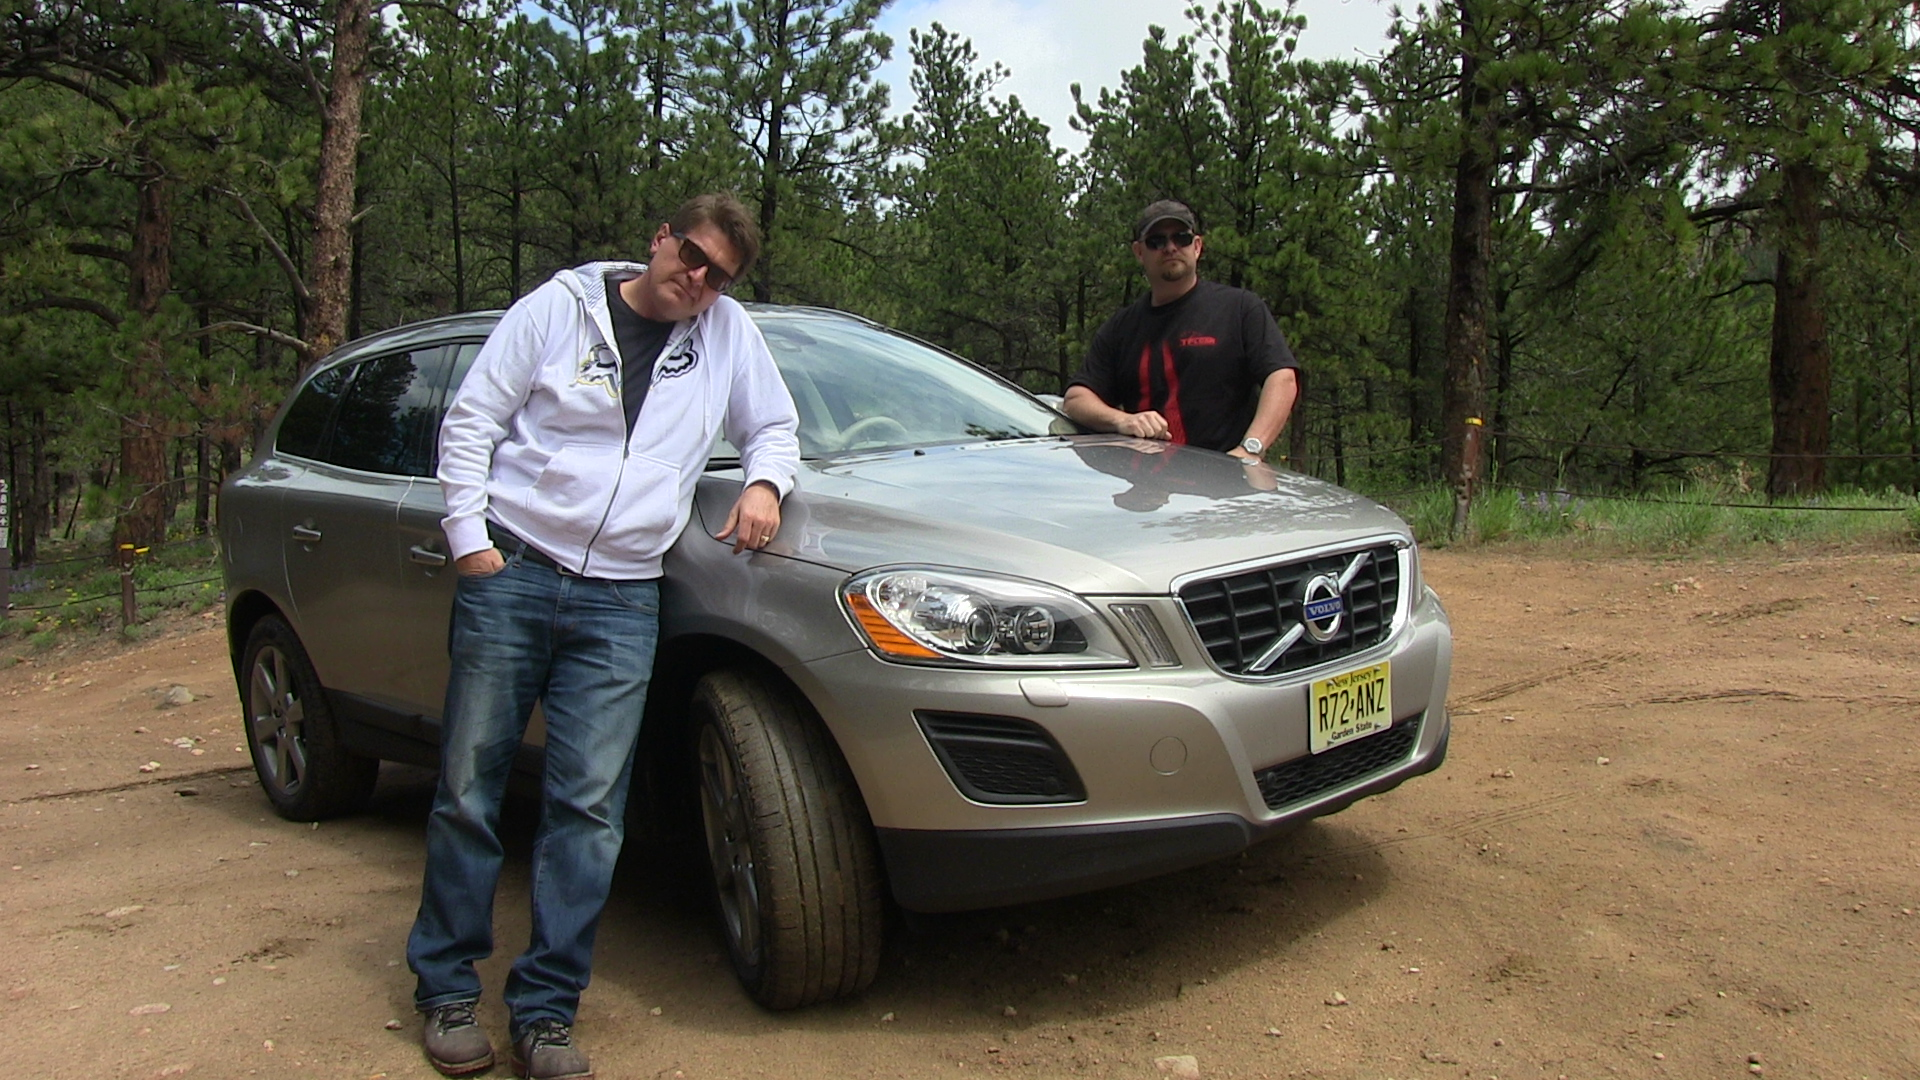 Zombies Car Wallpaper 2013 Volvo Xc60 T6 Colorado Off Road Challenge Amp Review